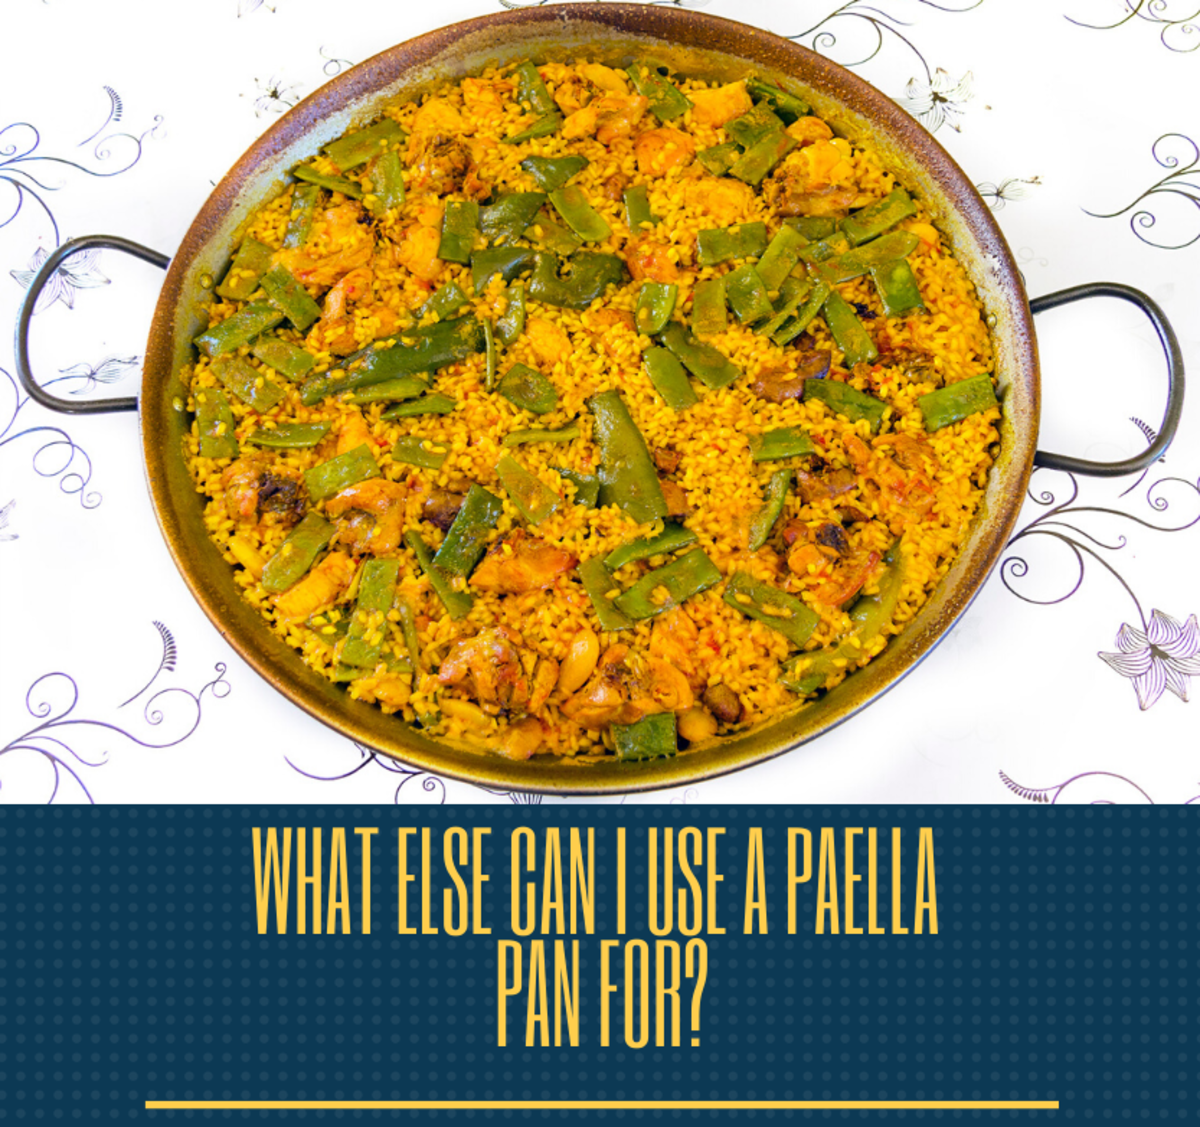 Surpisingly, paella pans can have multiple uses. Read on to learn more.